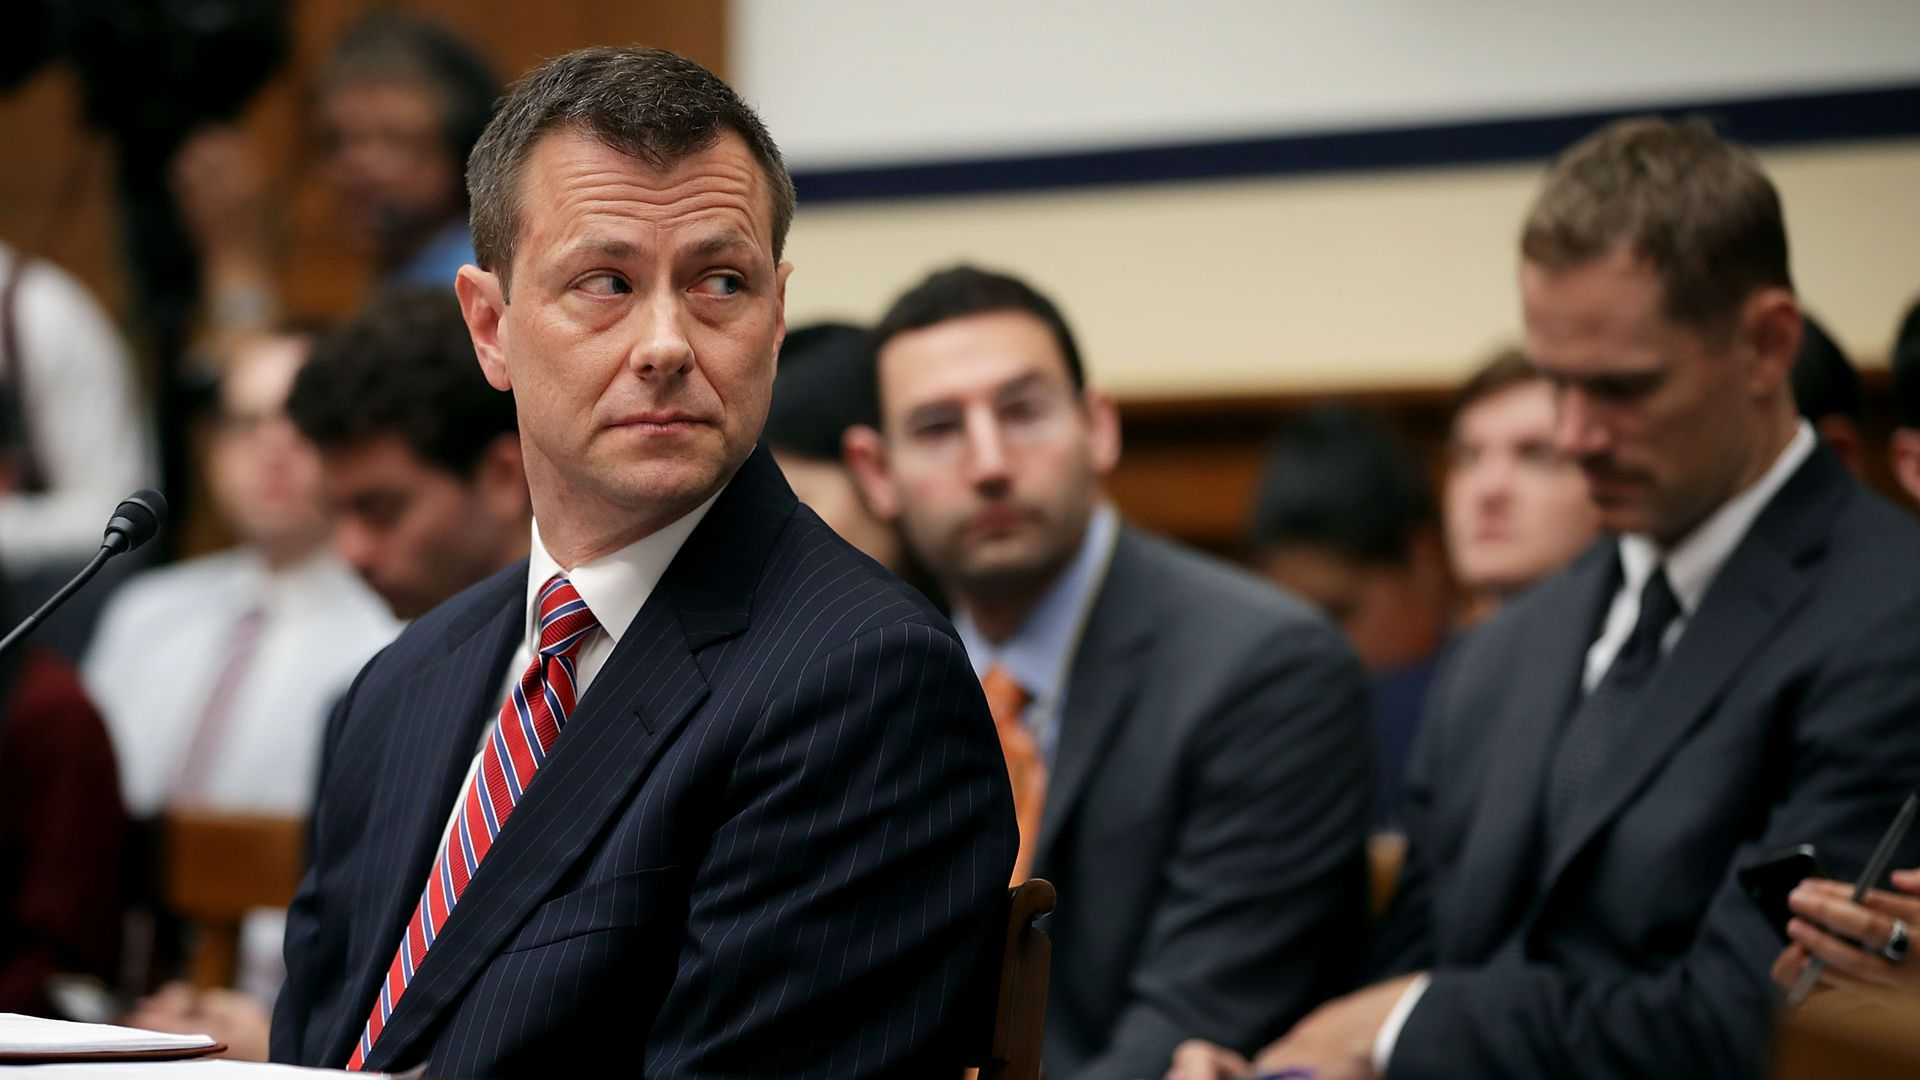 Former FBI official Peter Strzok. Photo: Chip Somodevilla/Getty Images